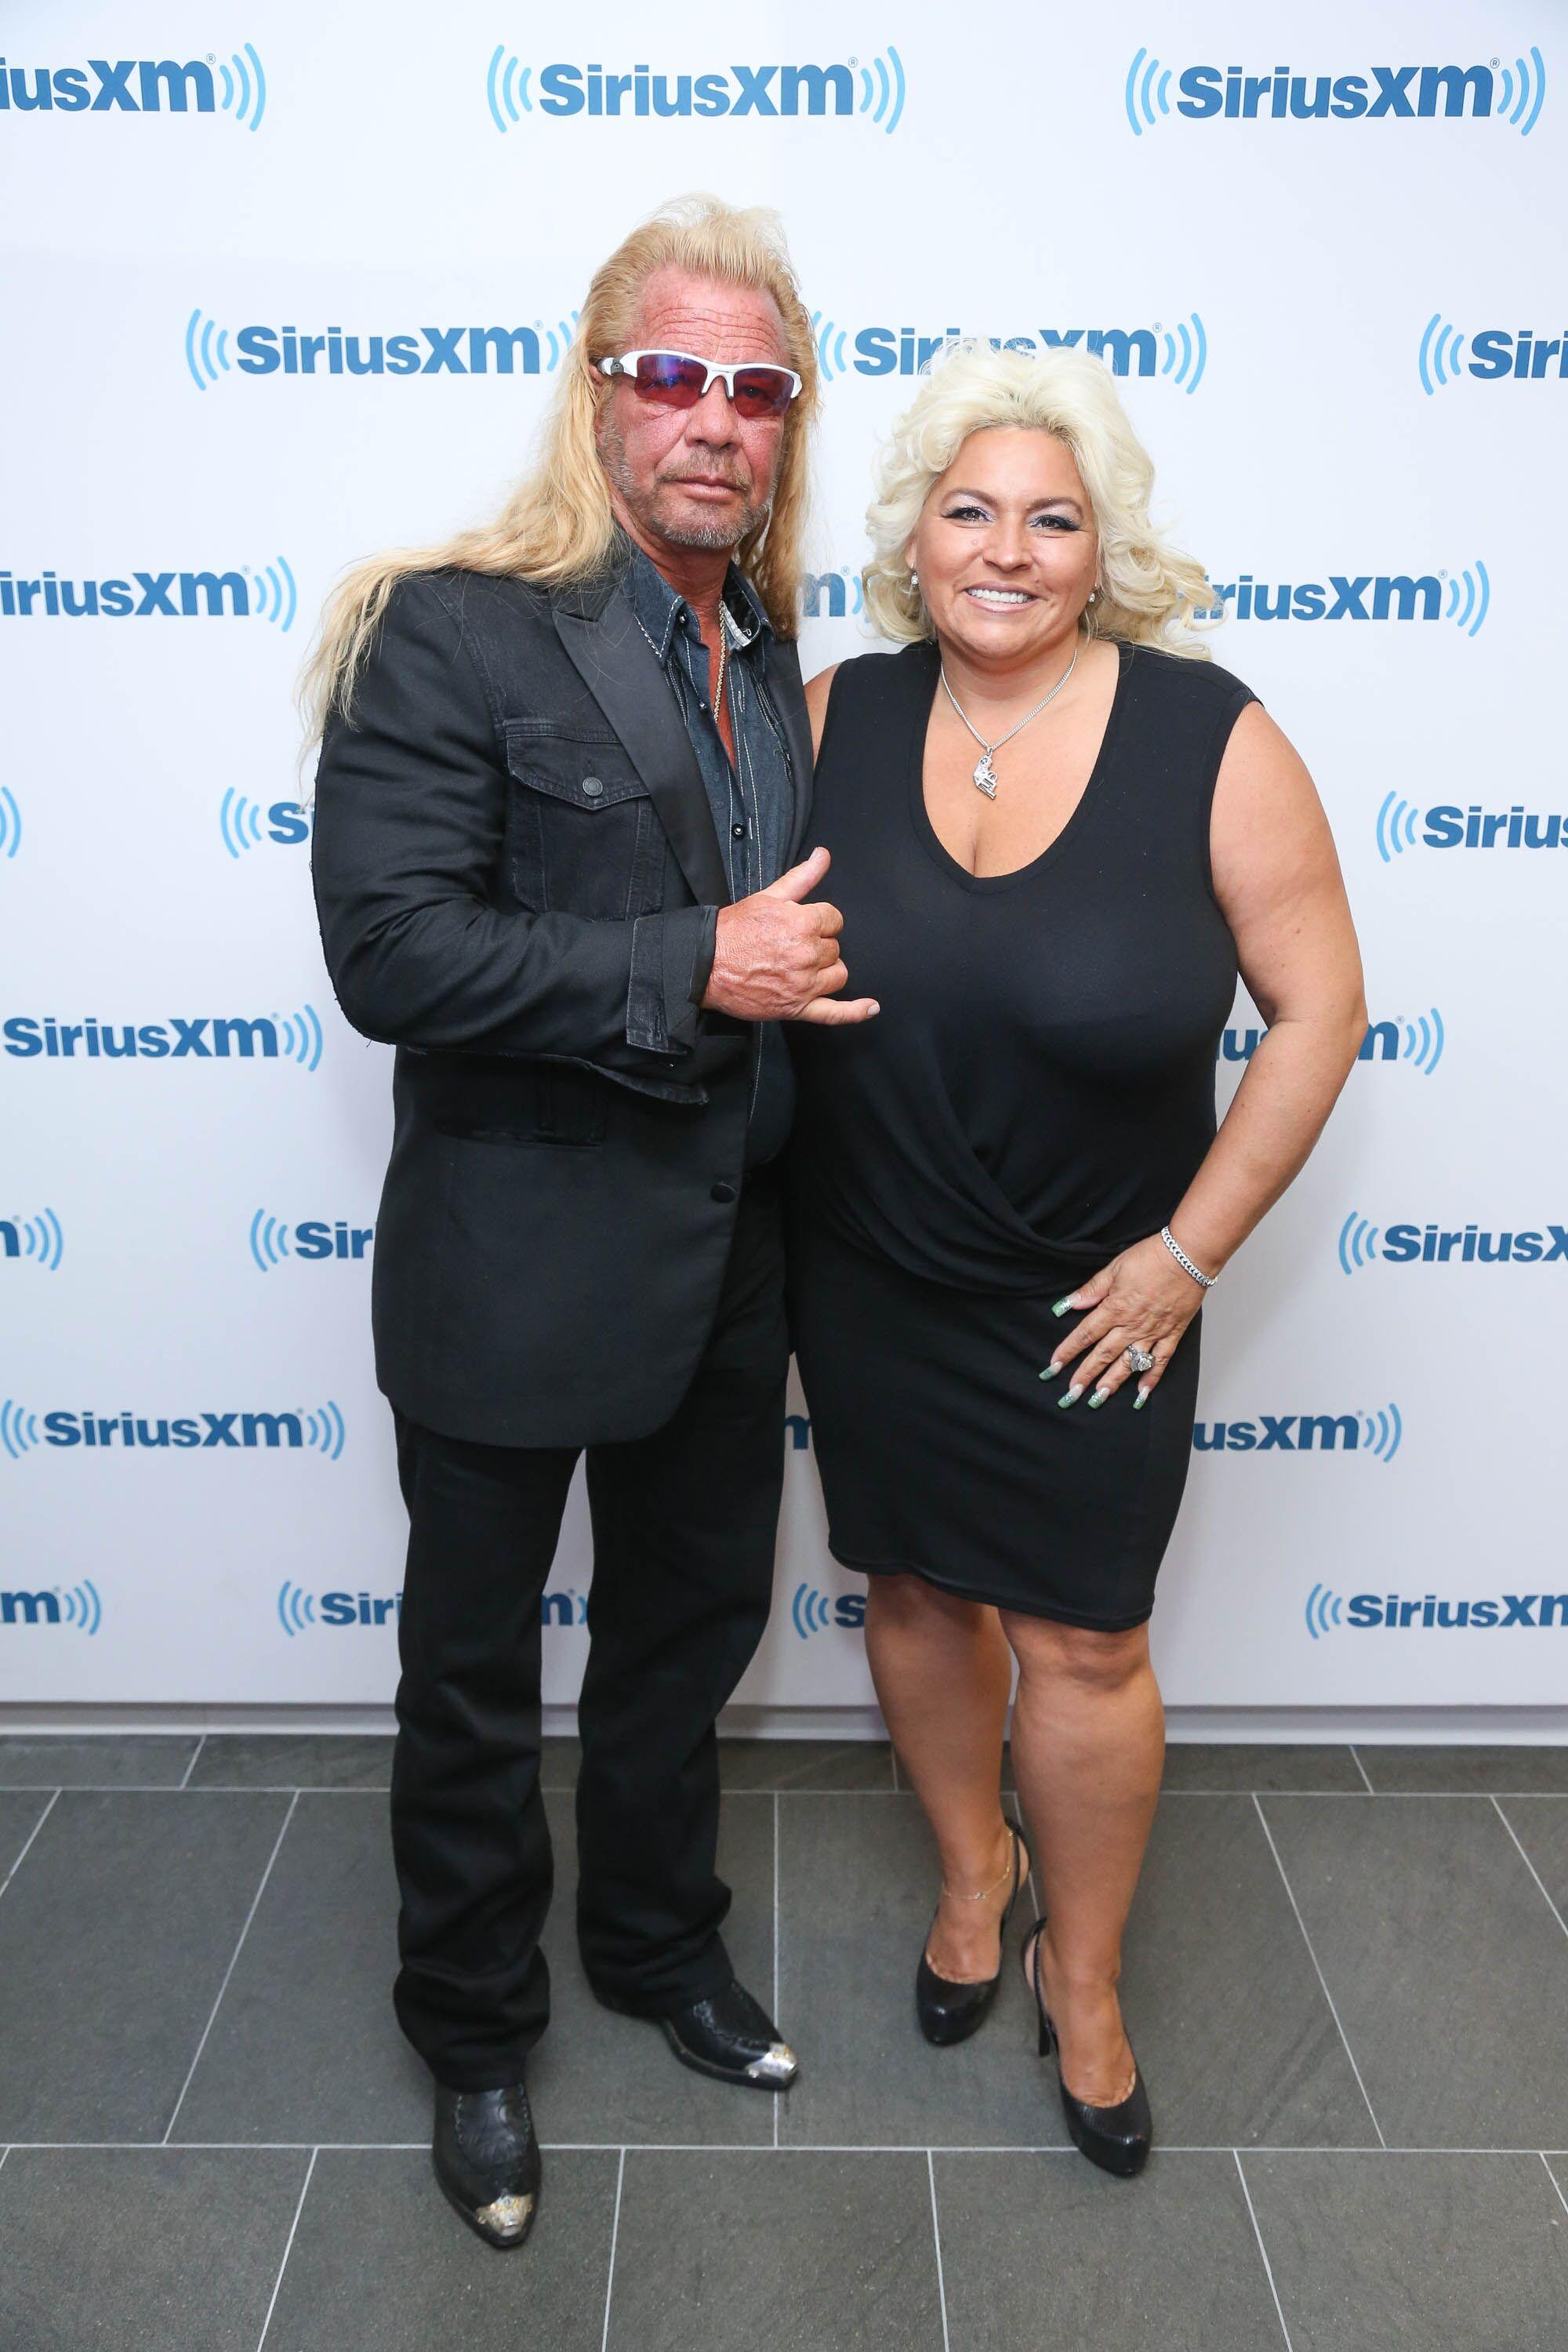 Duane & Beth Chapman. Image Credit: Getty Images